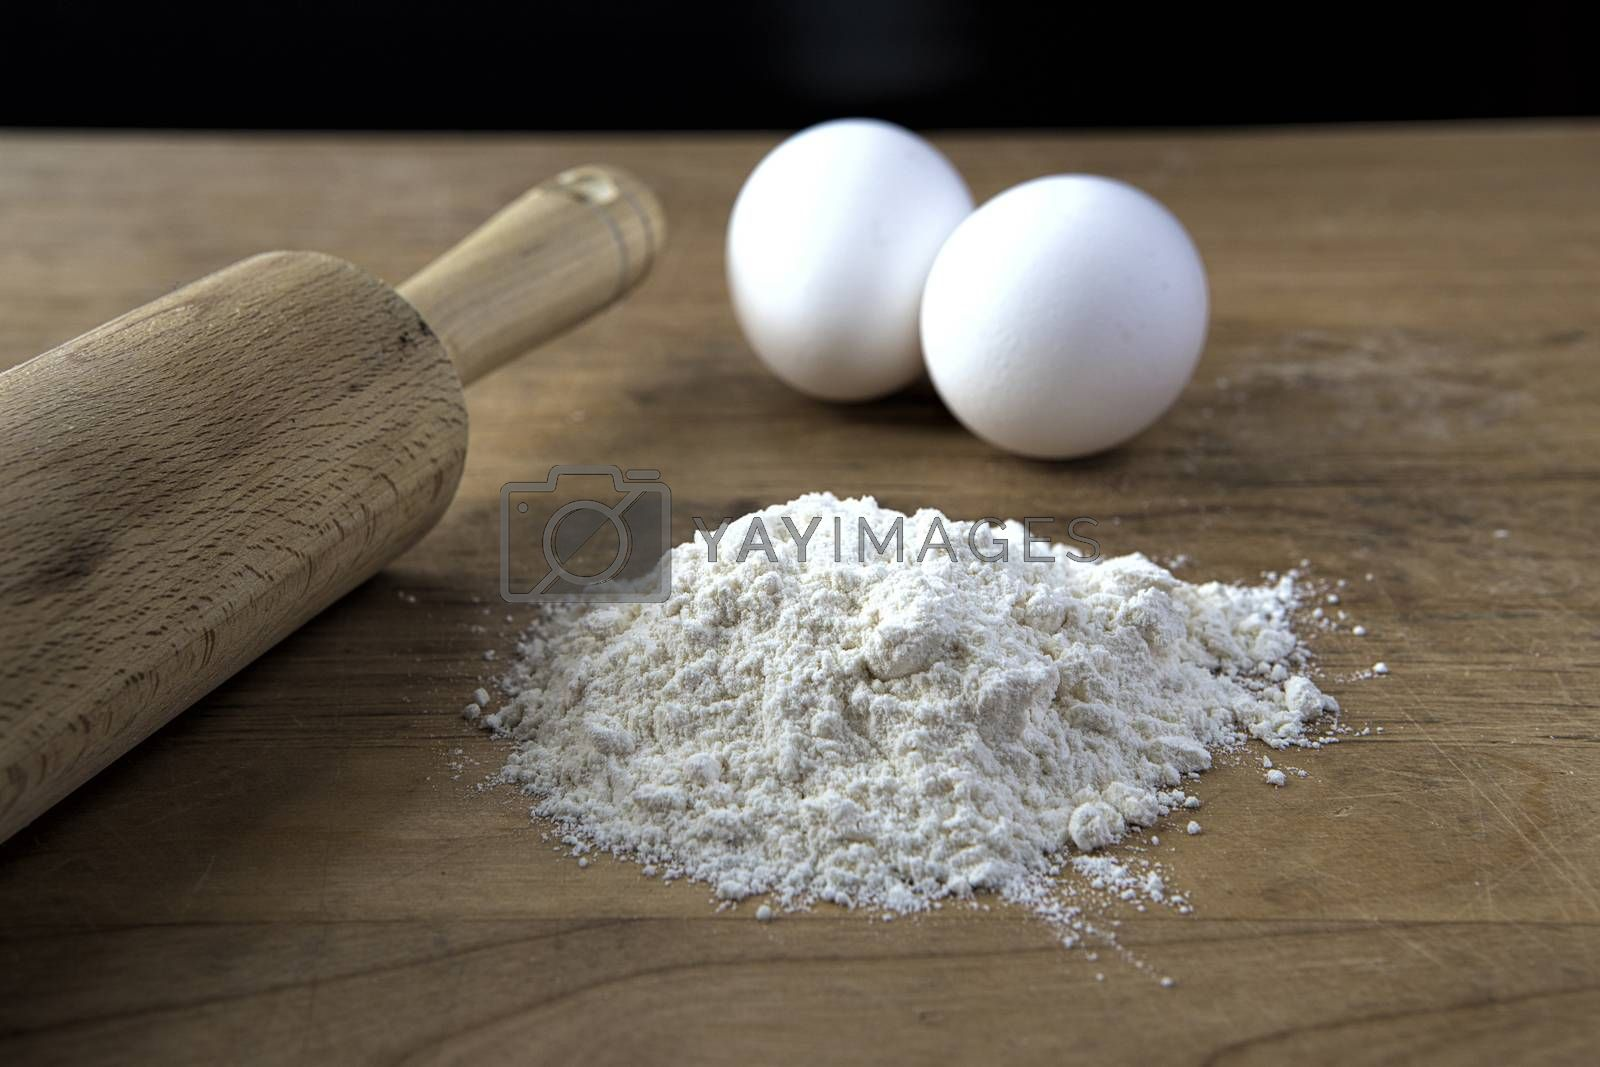 A concept photo of flour in a pile, two eggs, and a rolling pin.